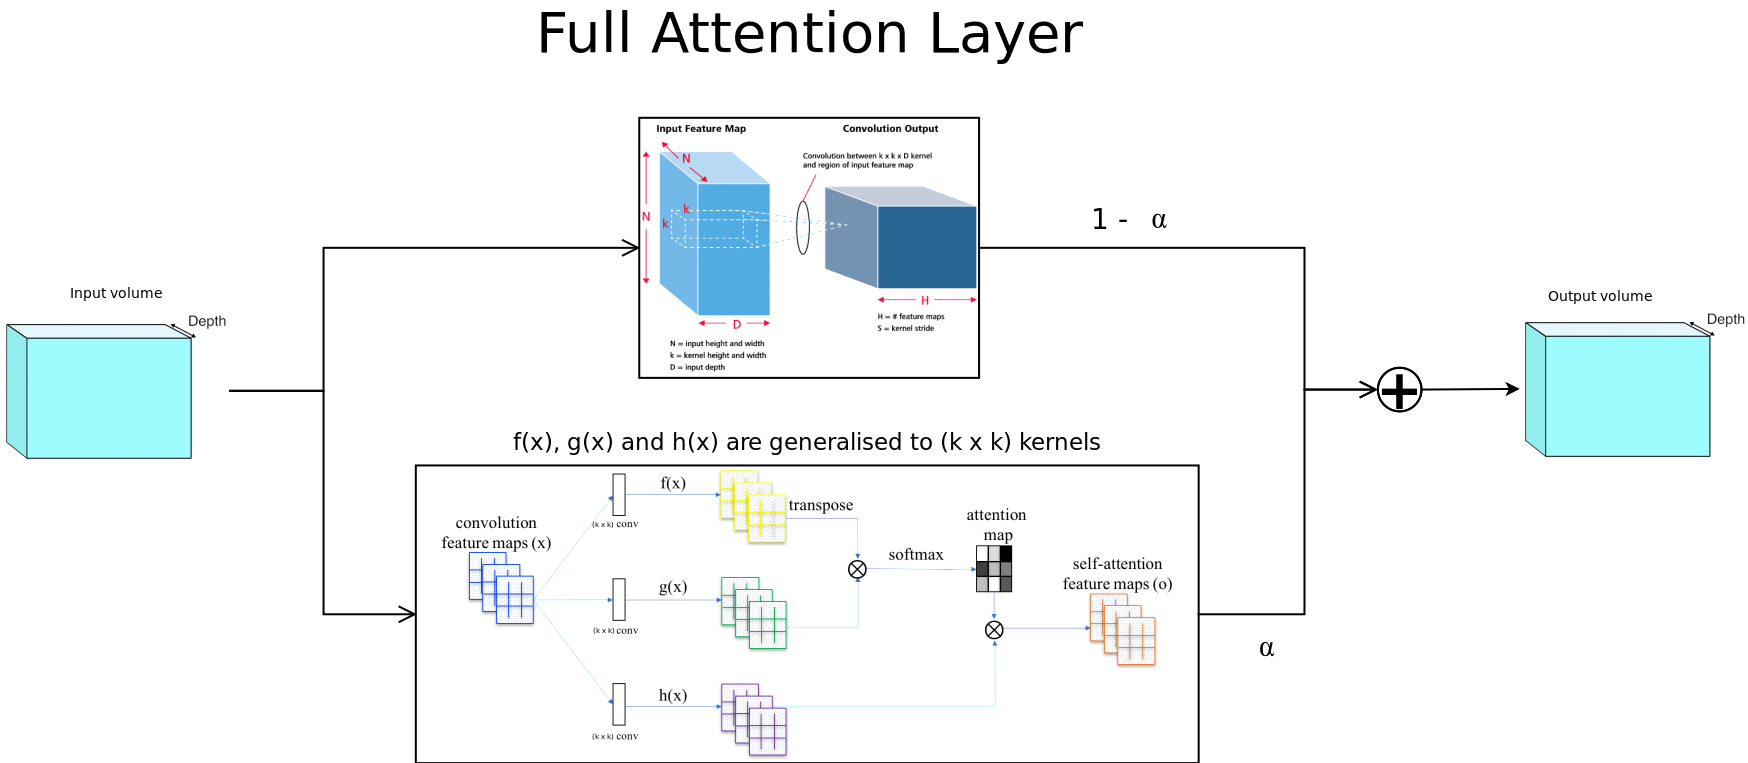 proposed full attention layer